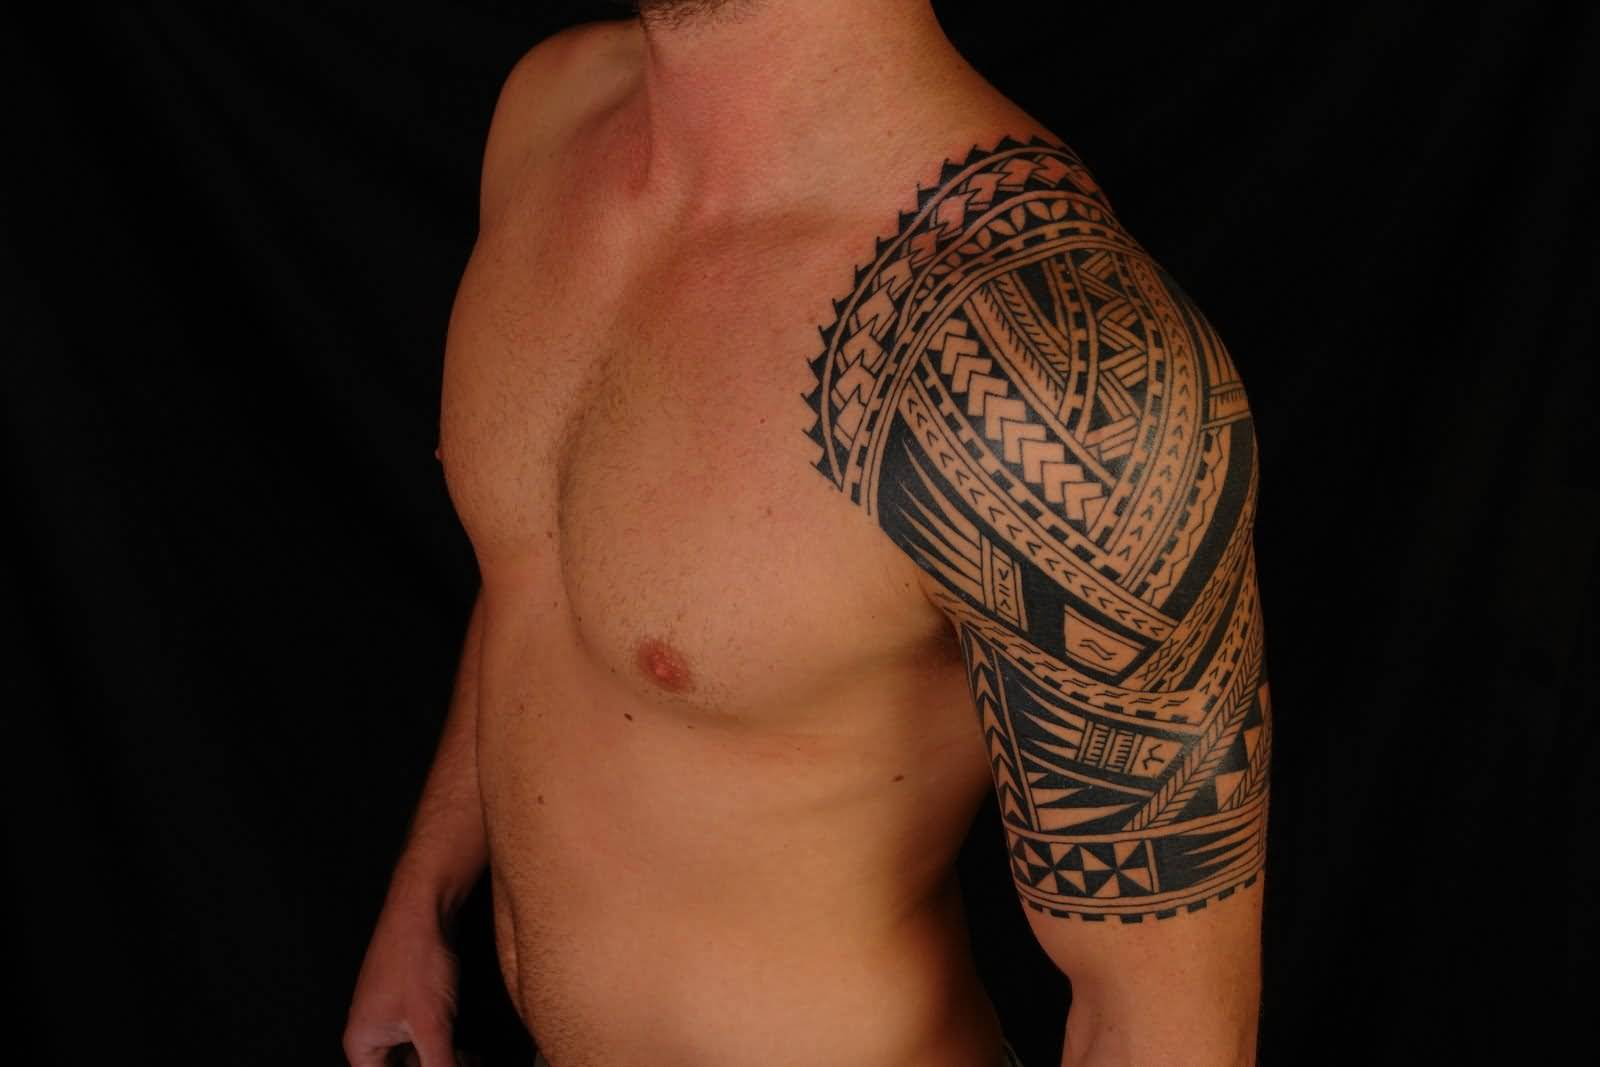 Black Ink Nice Samoan Tattoo Design Idea